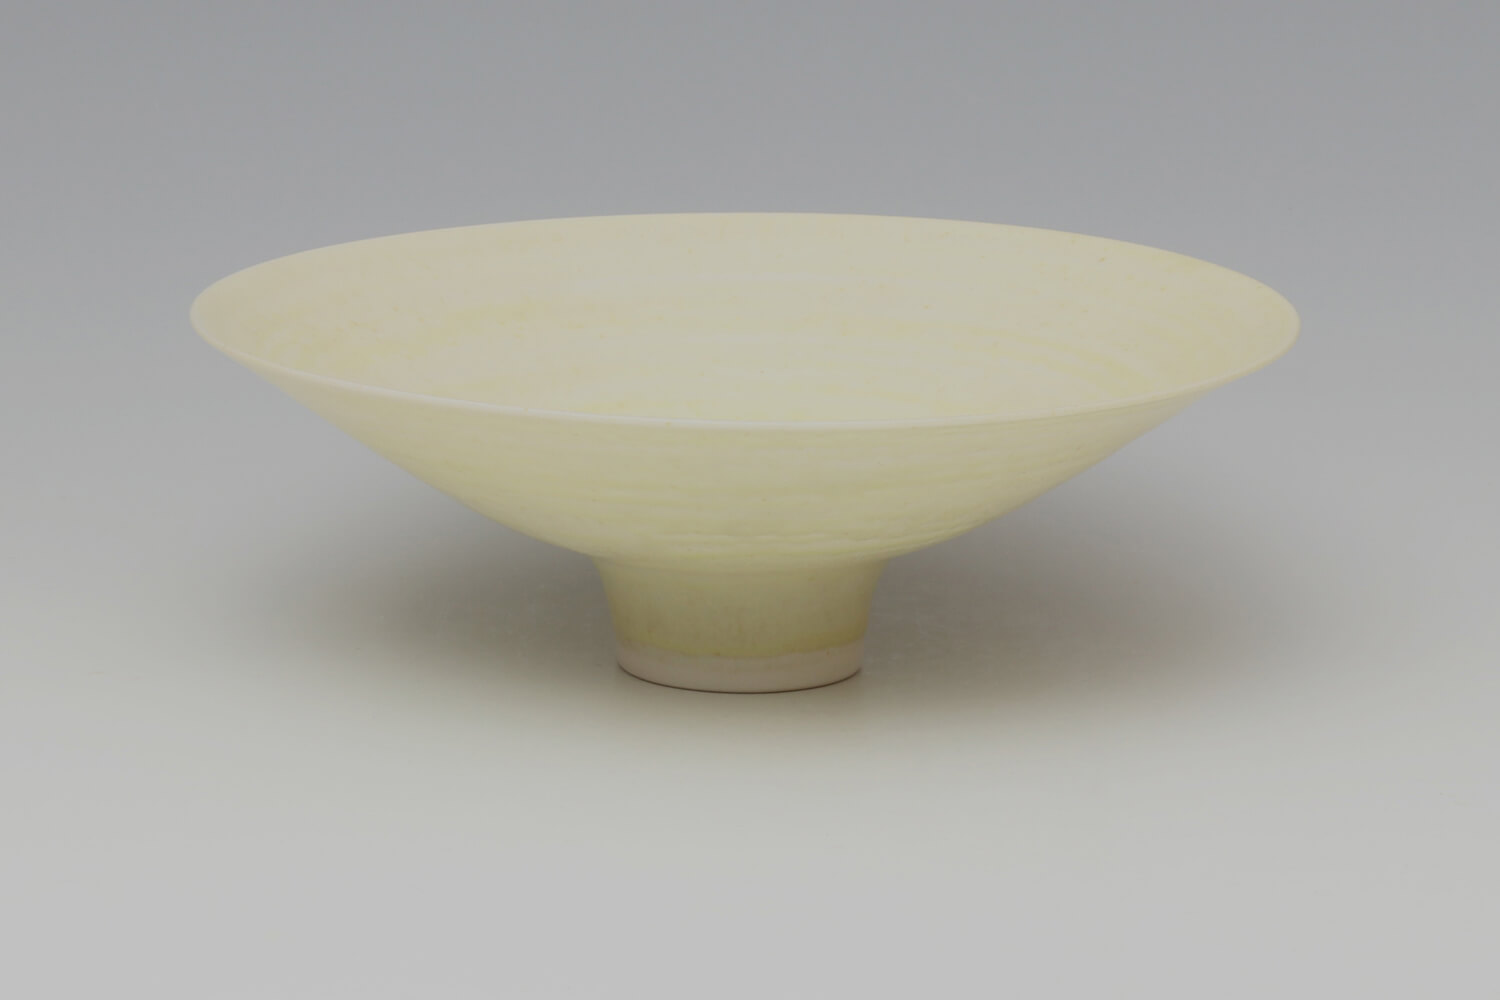 Peter Wills Ceramic Pale Yellow Porcelain Bowl 192